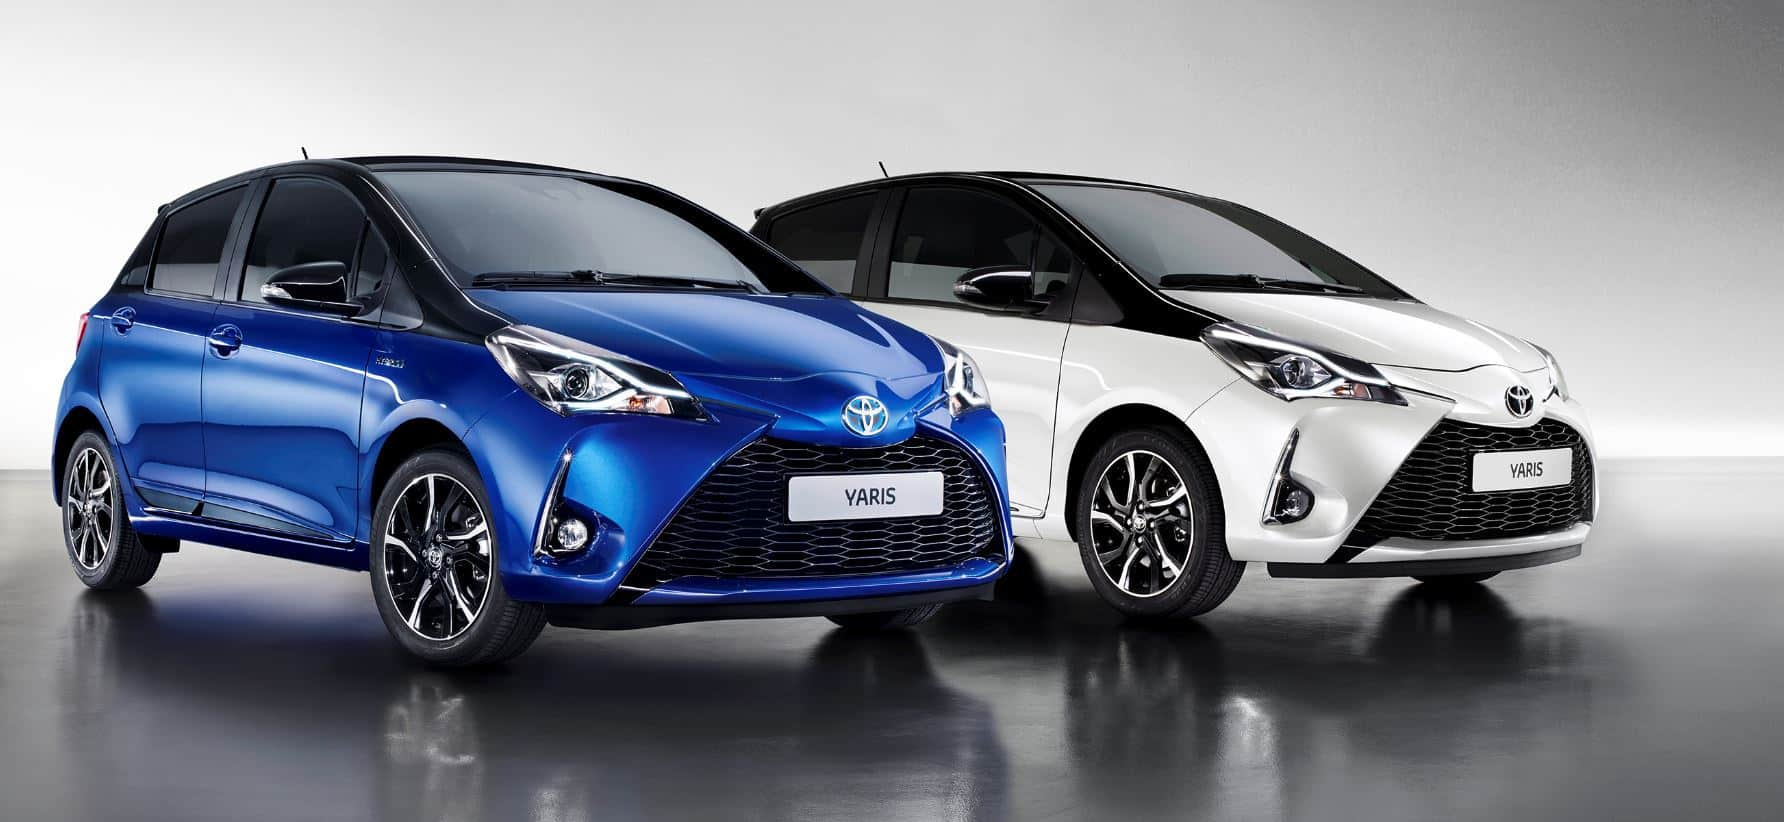 nuevo toyota yaris un restyling muy profundo con 900 cambios. Black Bedroom Furniture Sets. Home Design Ideas